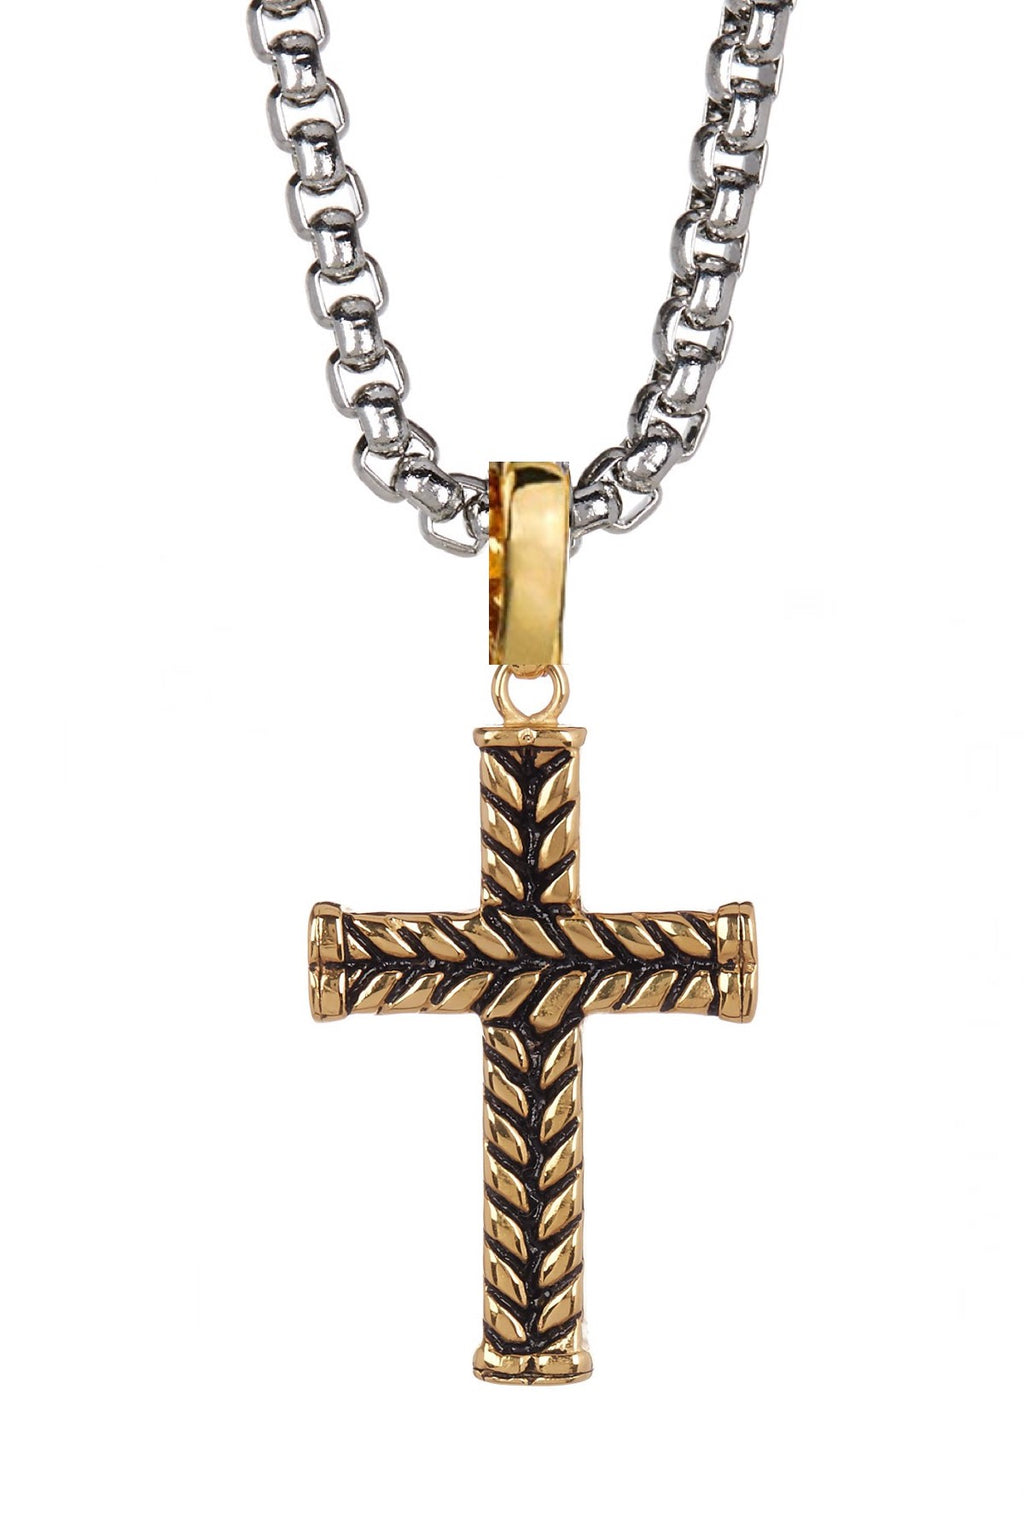 18k Gold & Silver two Tone Cross Necklace